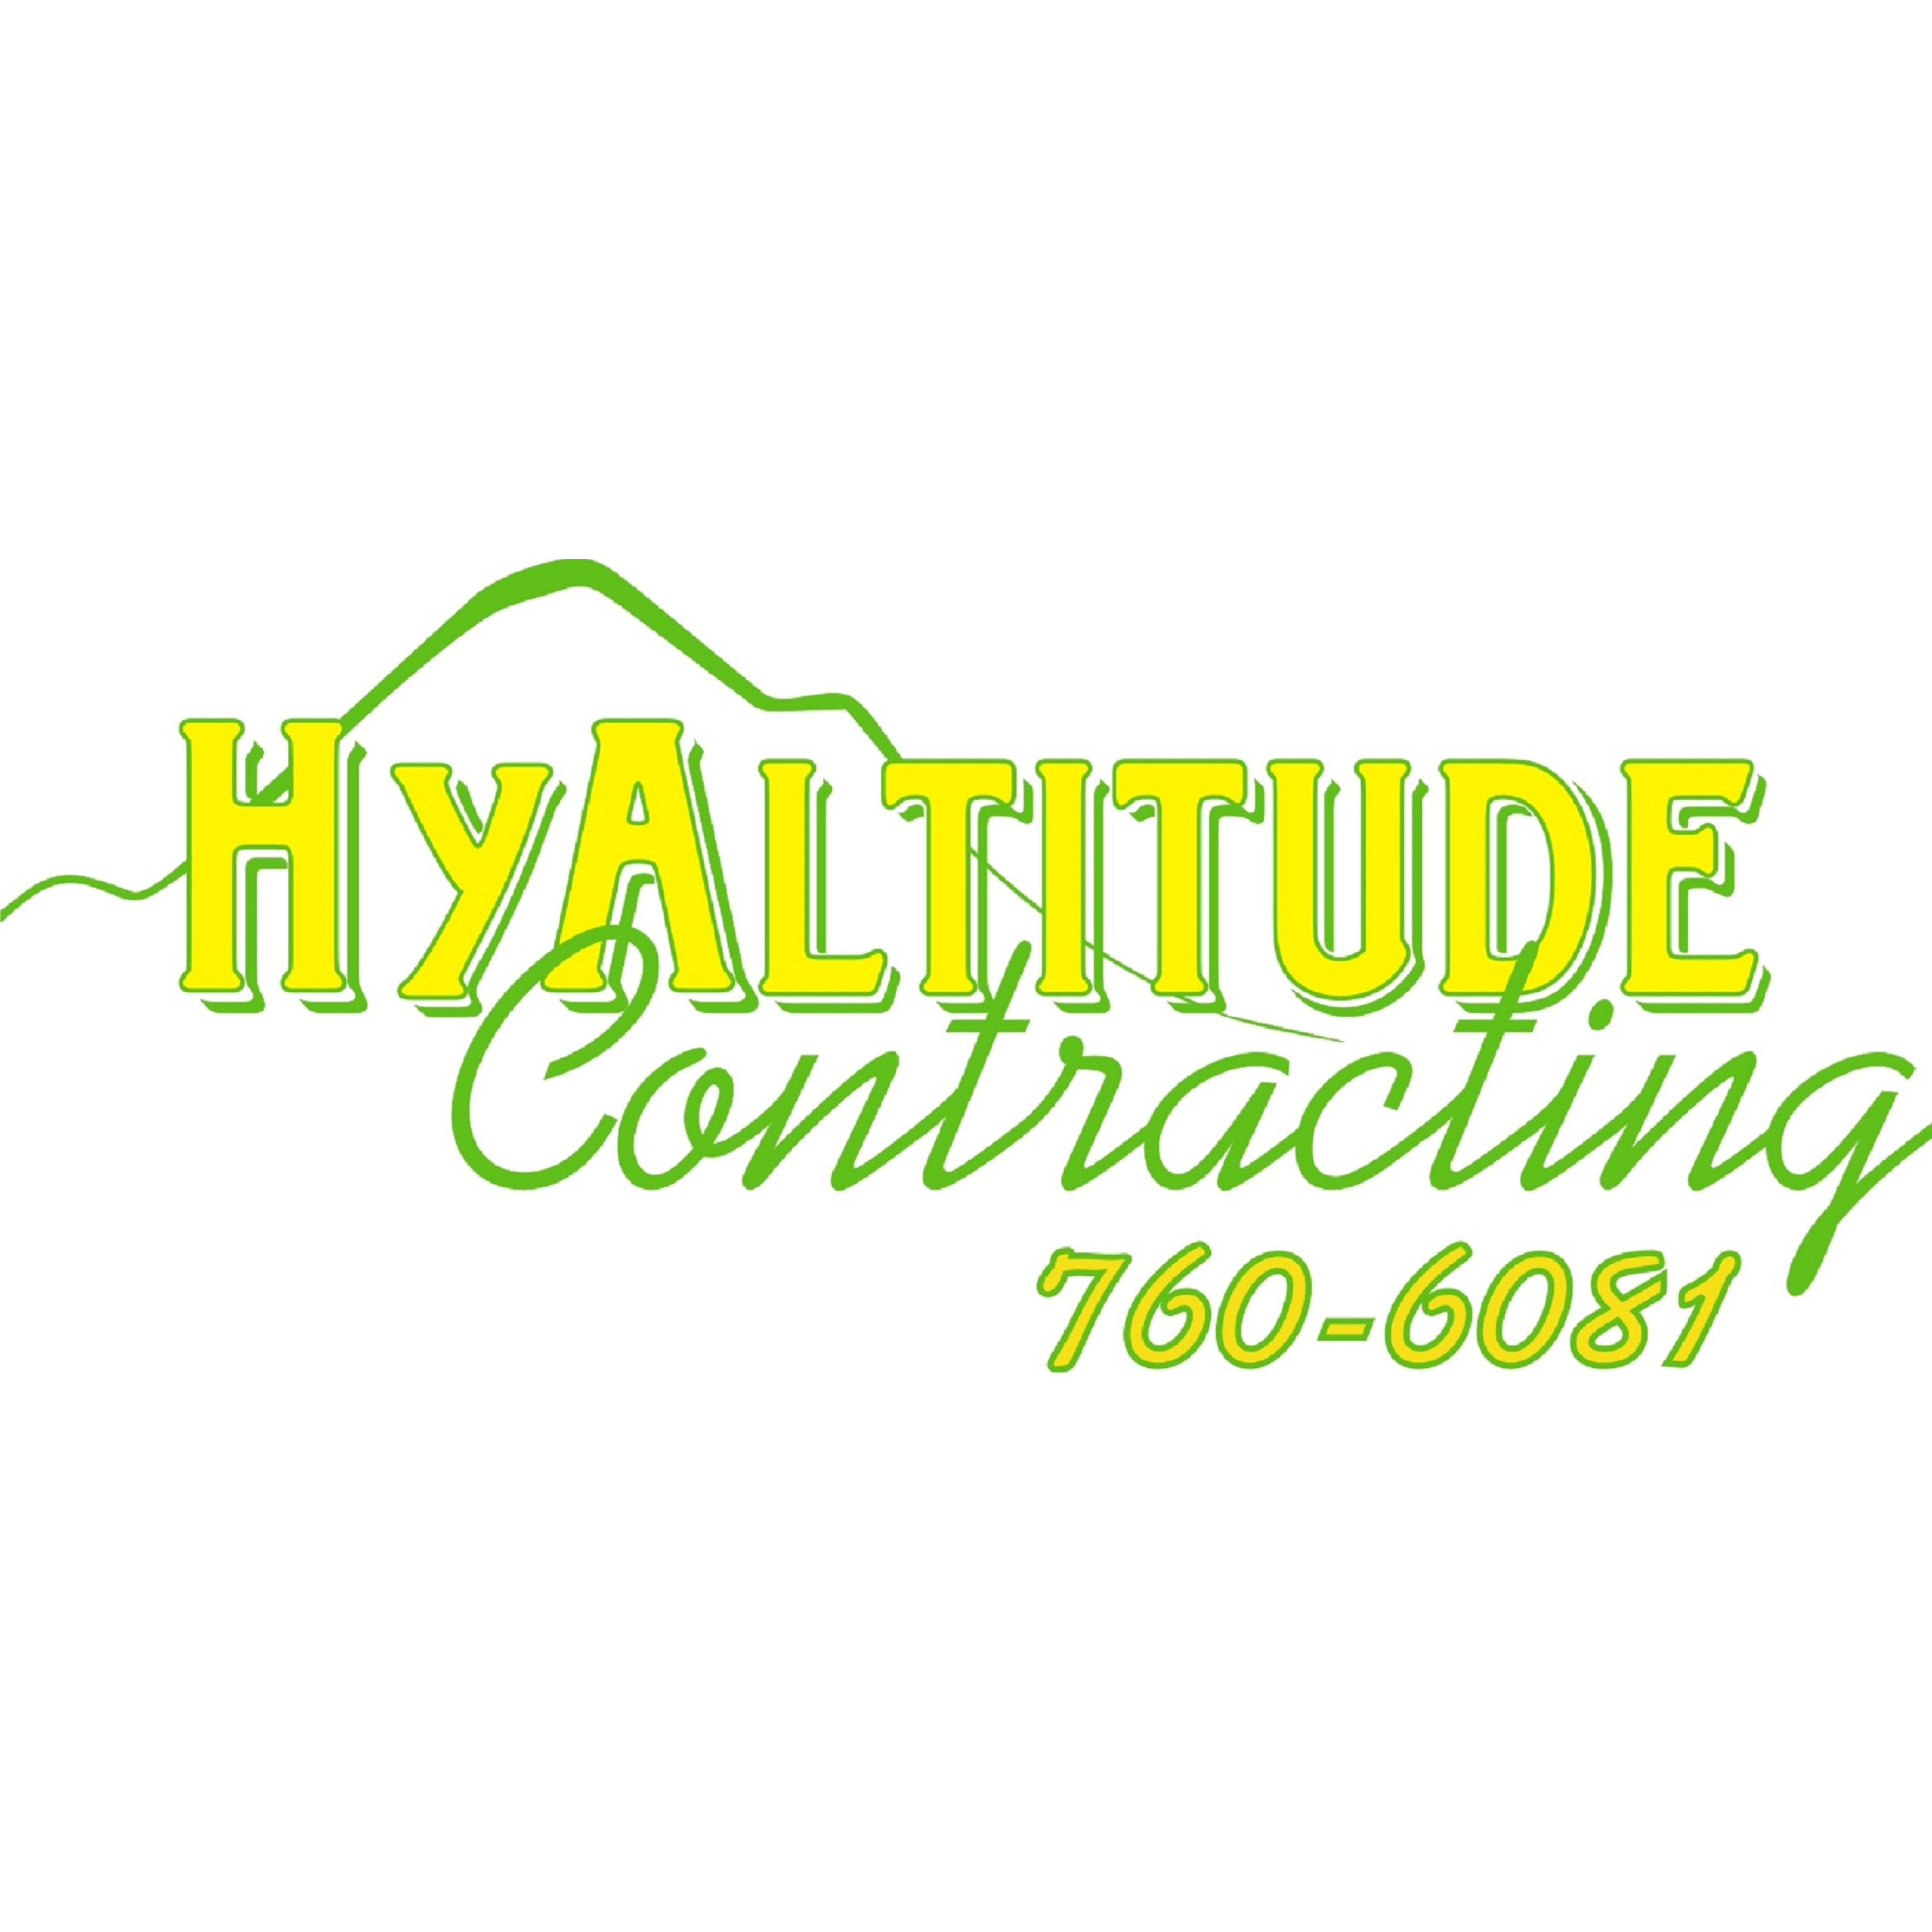 Hyaltitude Contracting